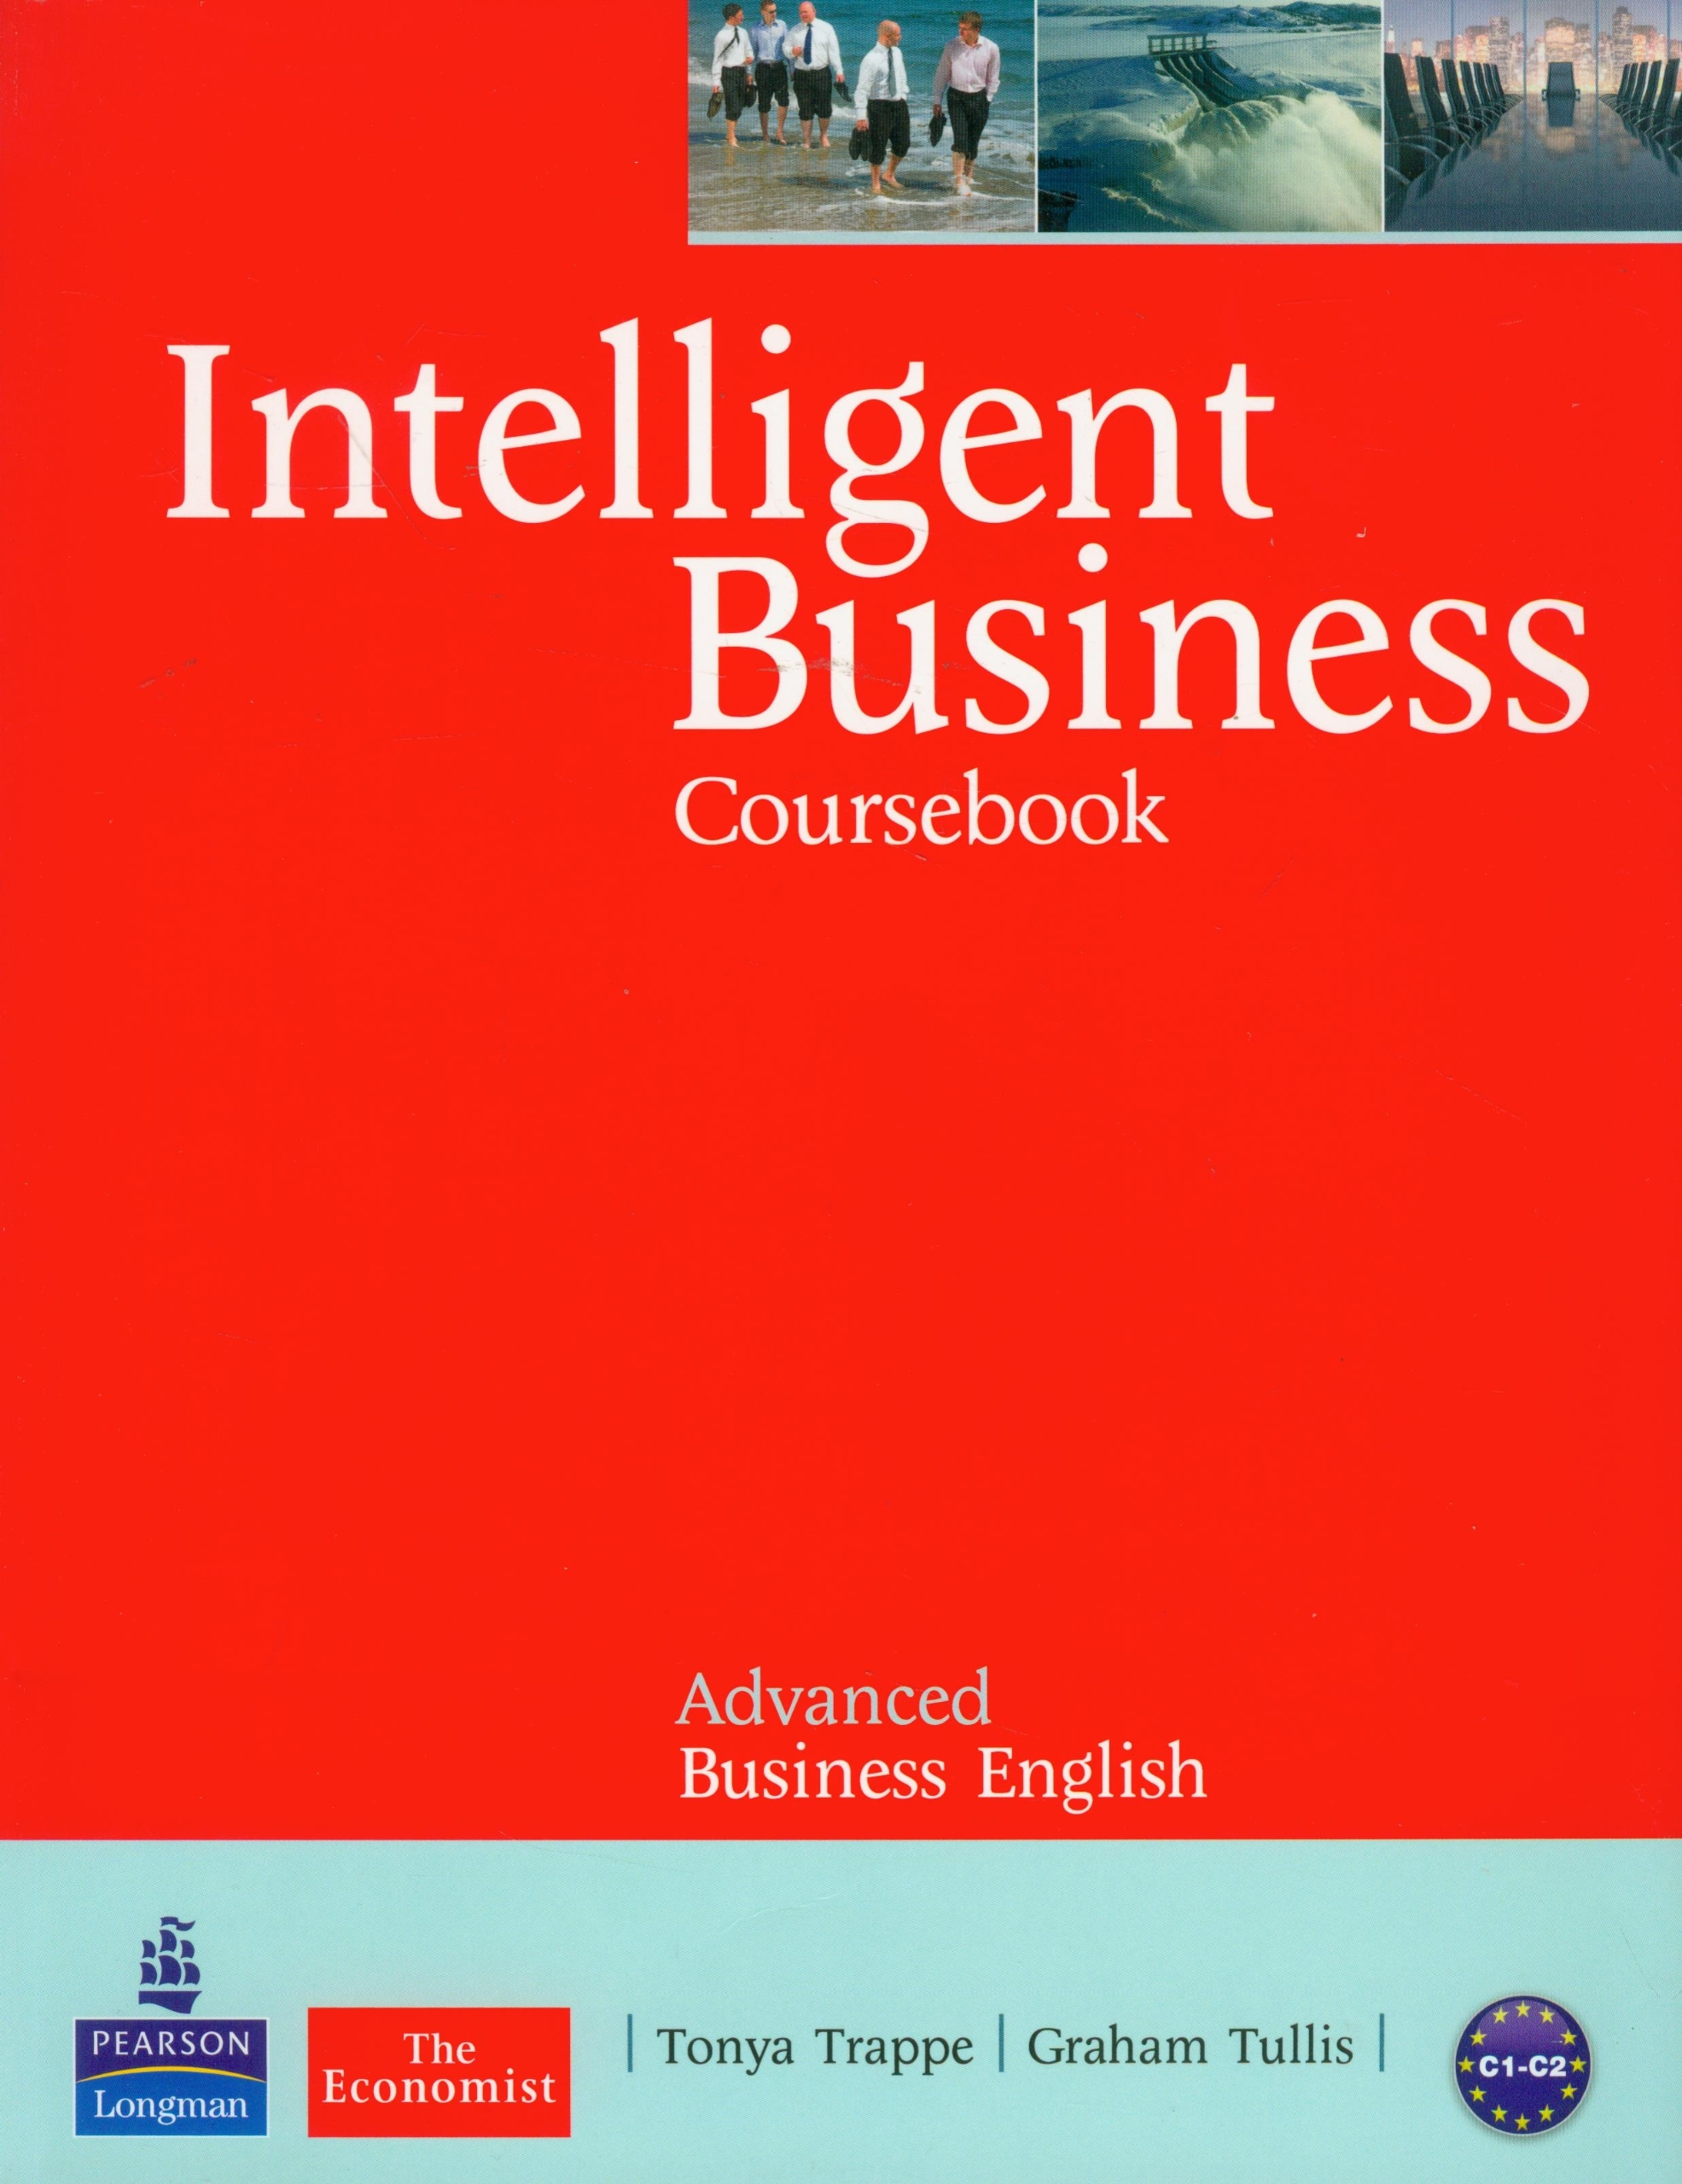 Intelligent business advanced coursebook tonya trappe graham intelligent business advanced coursebook tonya trappe graham tullis 9781408217733 amazon books fandeluxe Choice Image